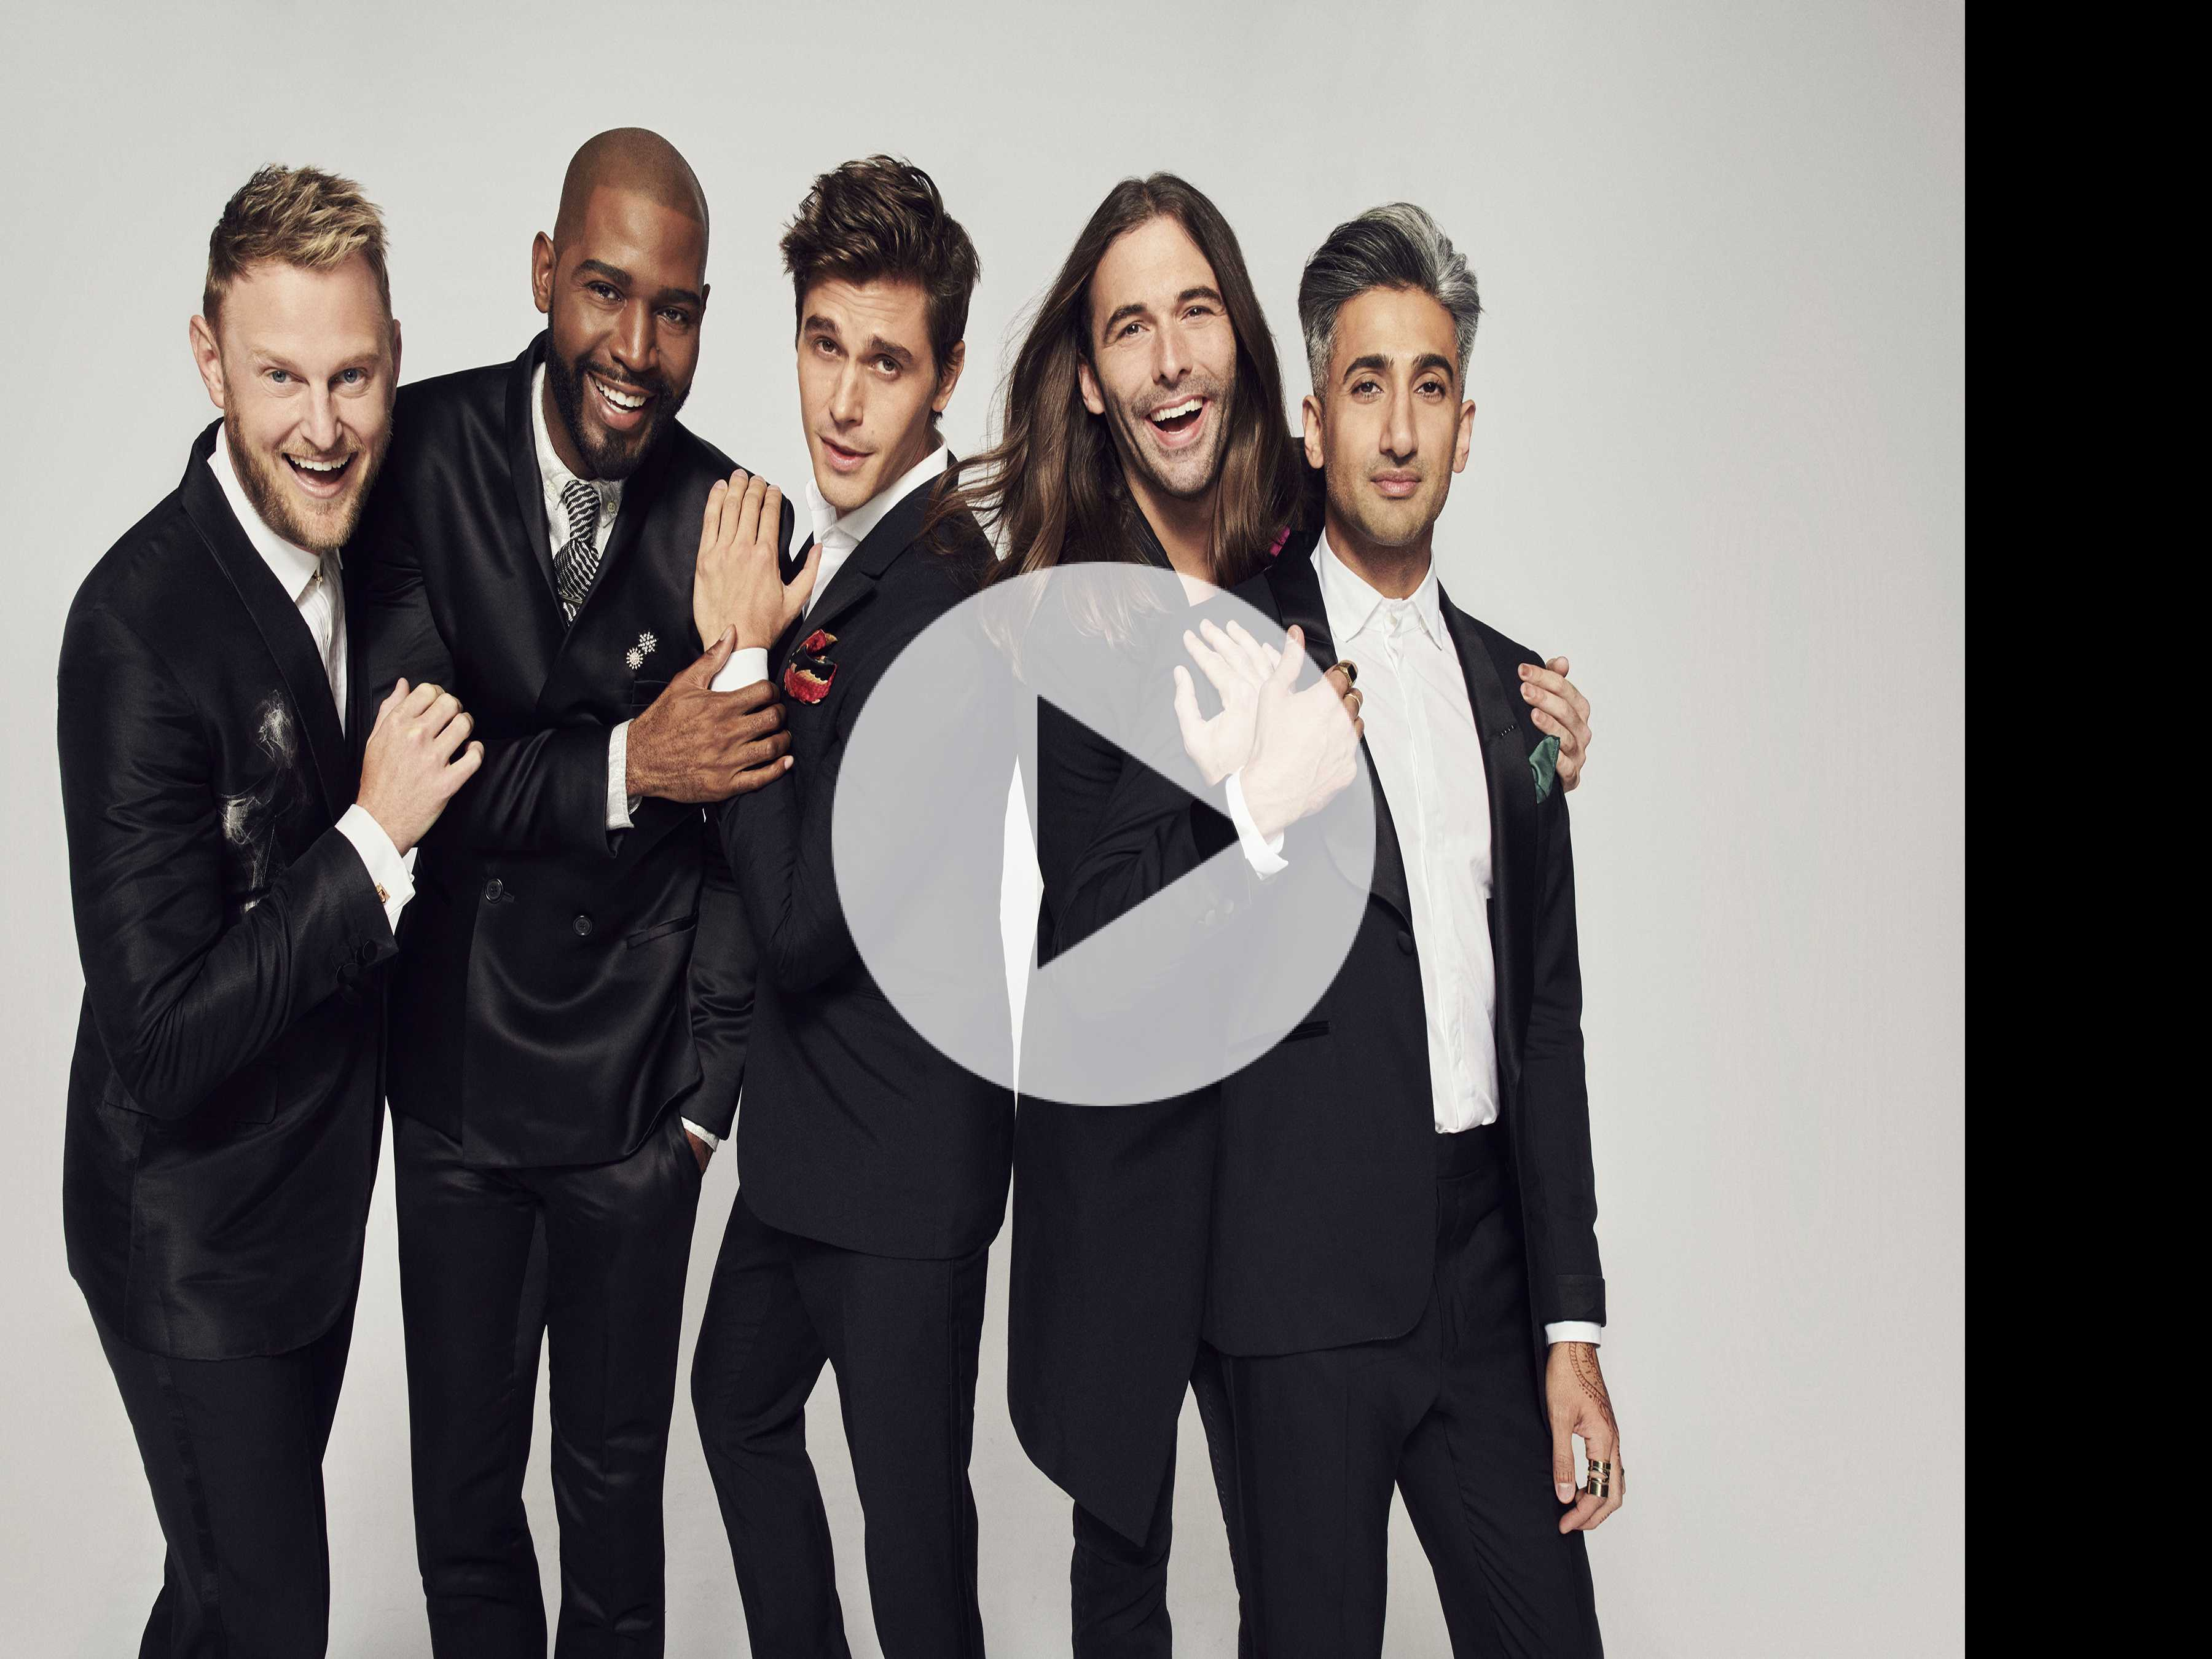 Watch: Netflix Drops First Trailer for 'Queer Eye' Reboot